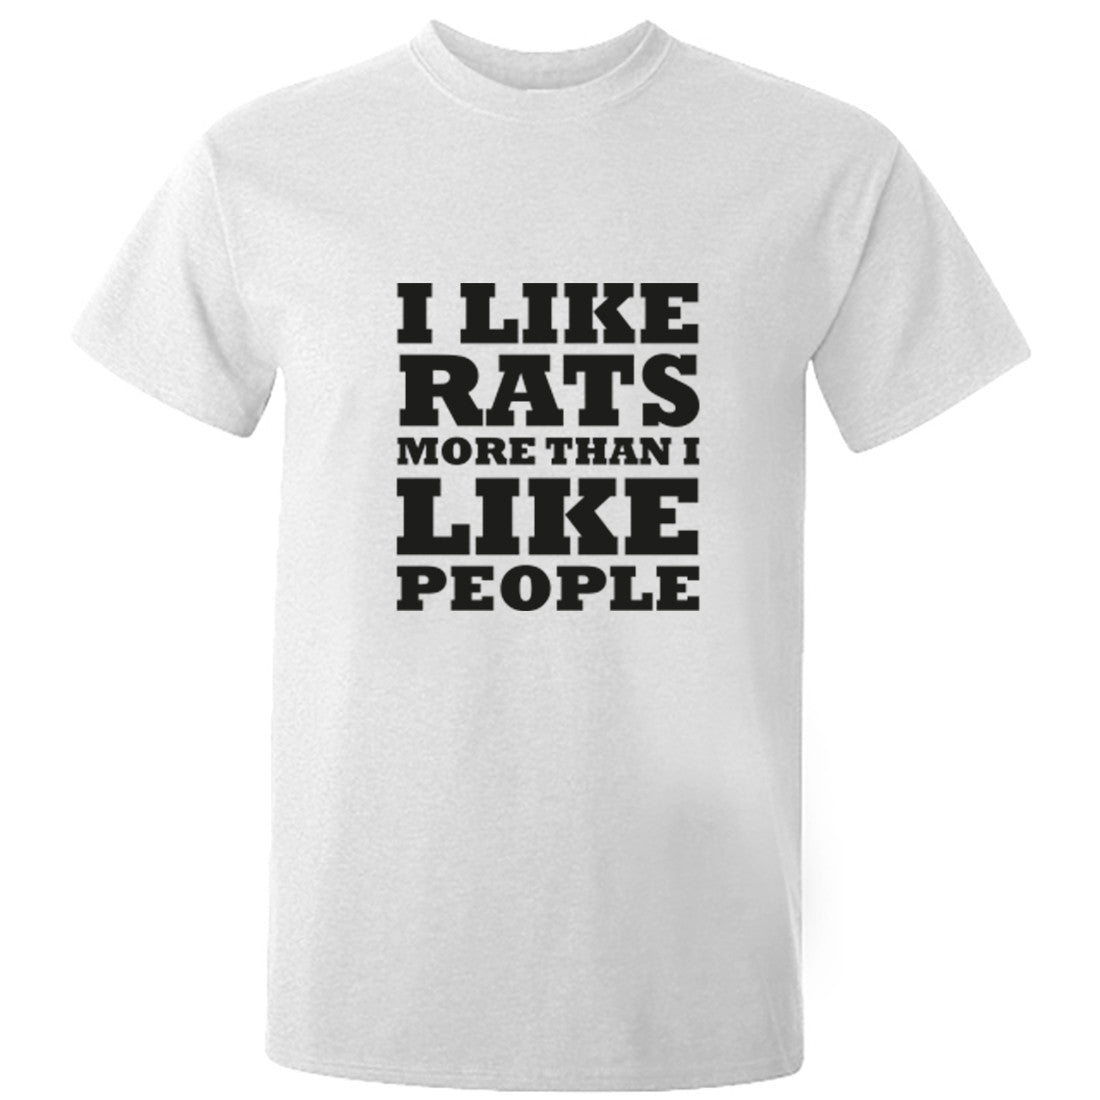 I Like Rats More Than I Like People Unisex Fit T-Shirt K0655 - Illustrated Identity Ltd.